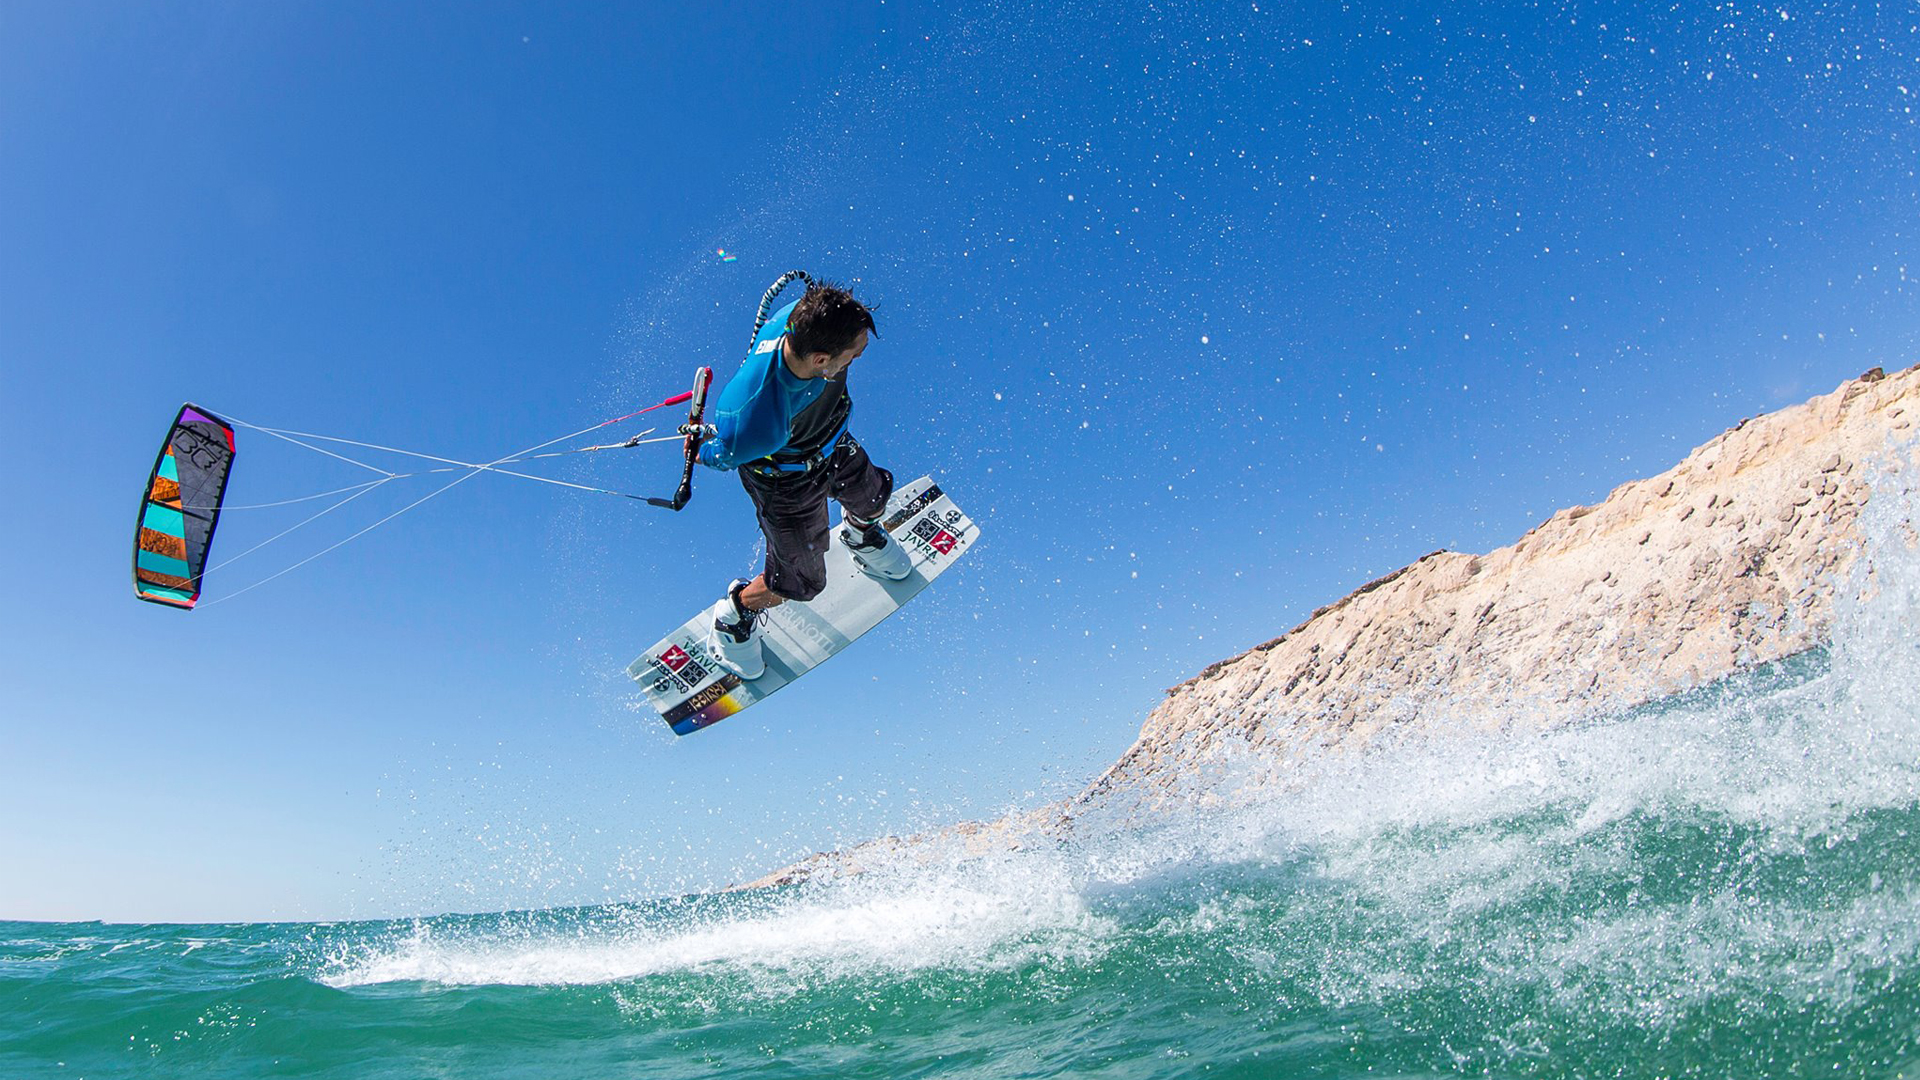 Kiteboarding Wallpapers and Background Images   stmednet 1920x1080